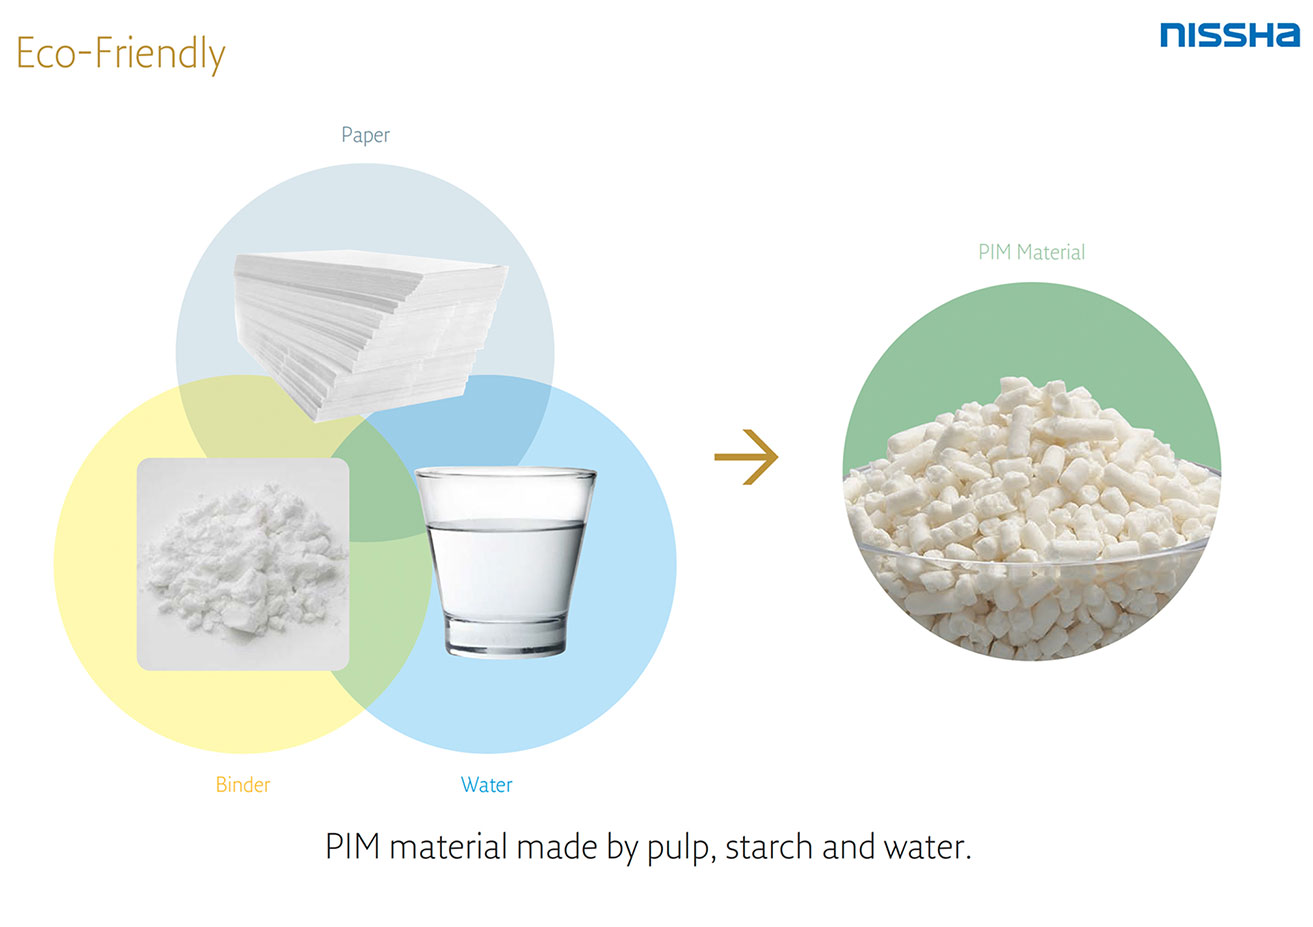 PIM material made by pulp, starch and water